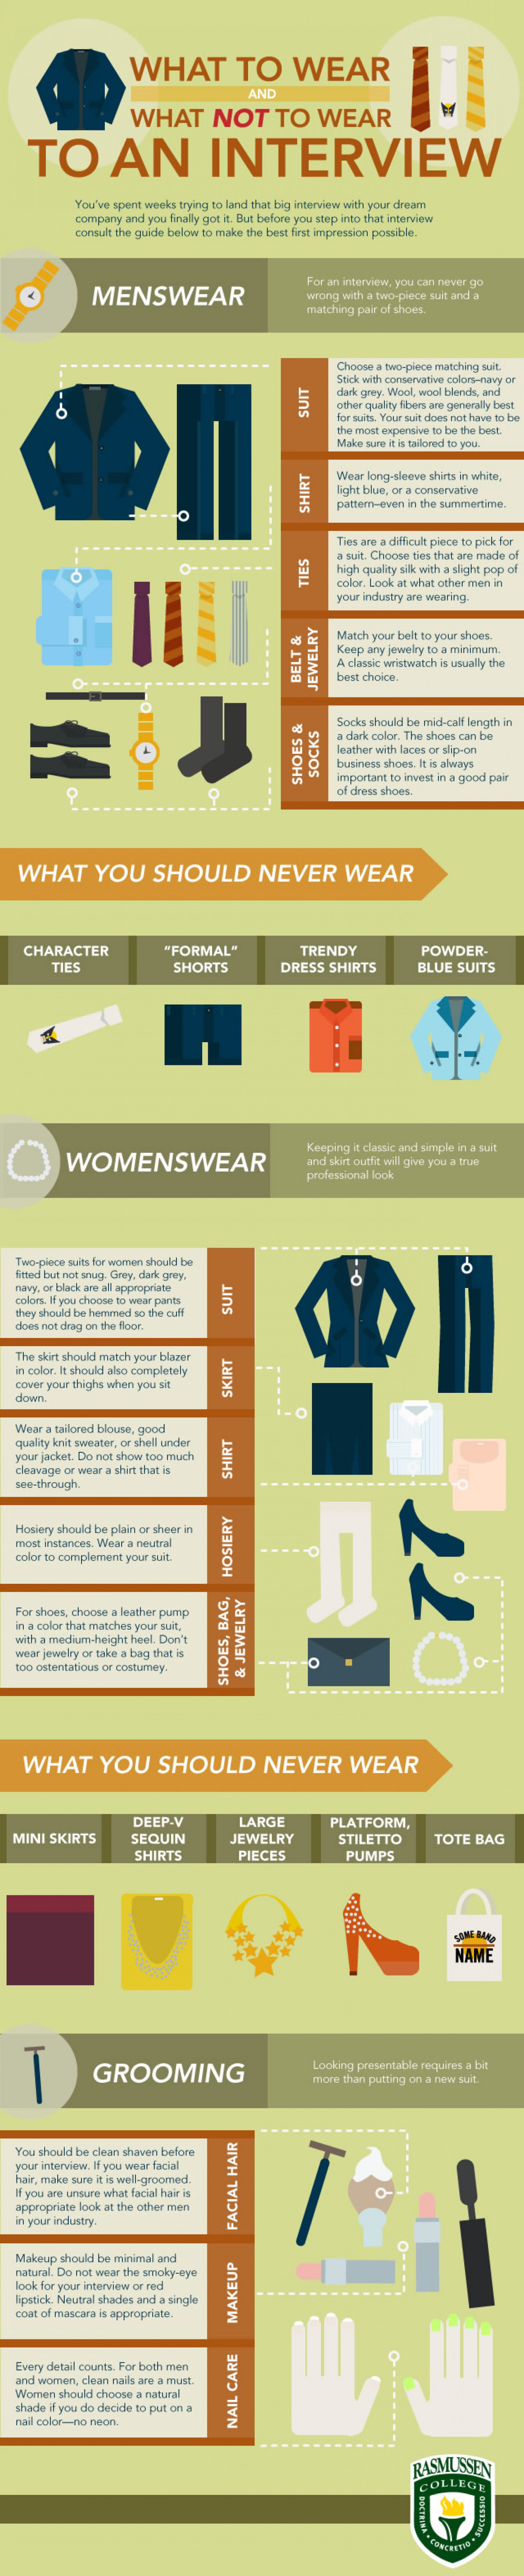 What to Wear and What Not to Wear to an Interview Infographic